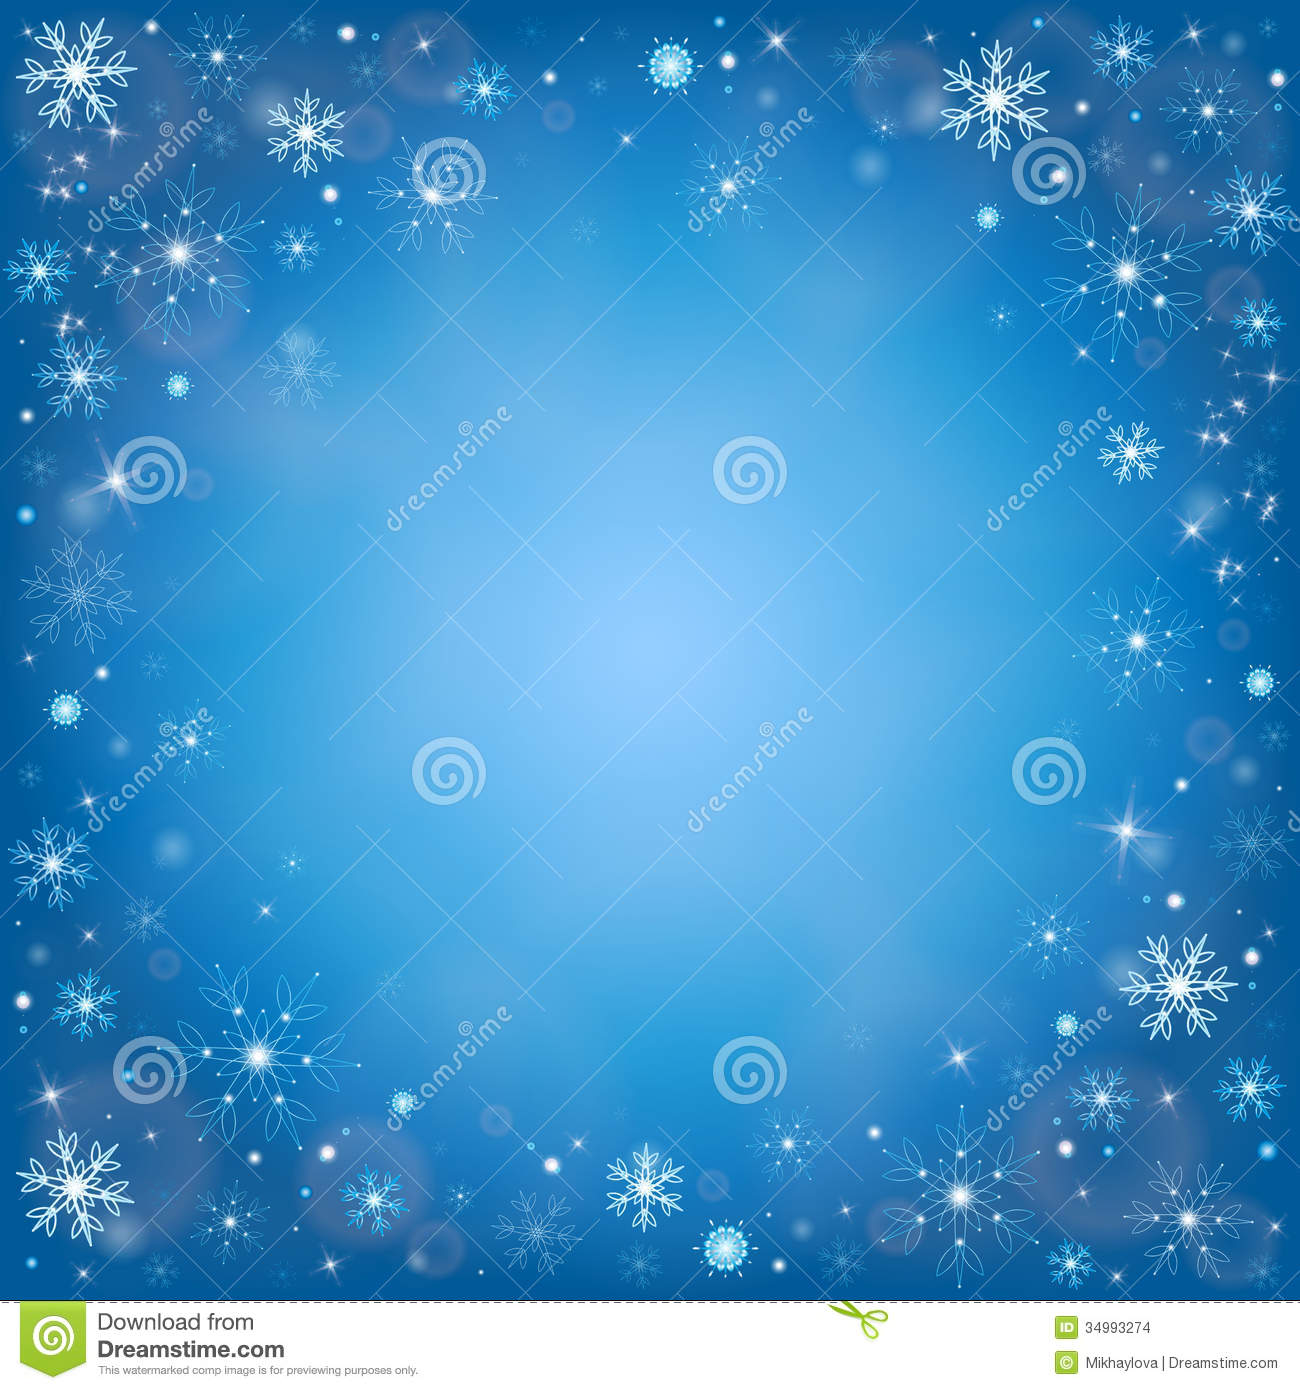 Free Download Of Christmas Wallpaper With Snow Falling Winter Frosty Snow Background Stock Images Image 34993274